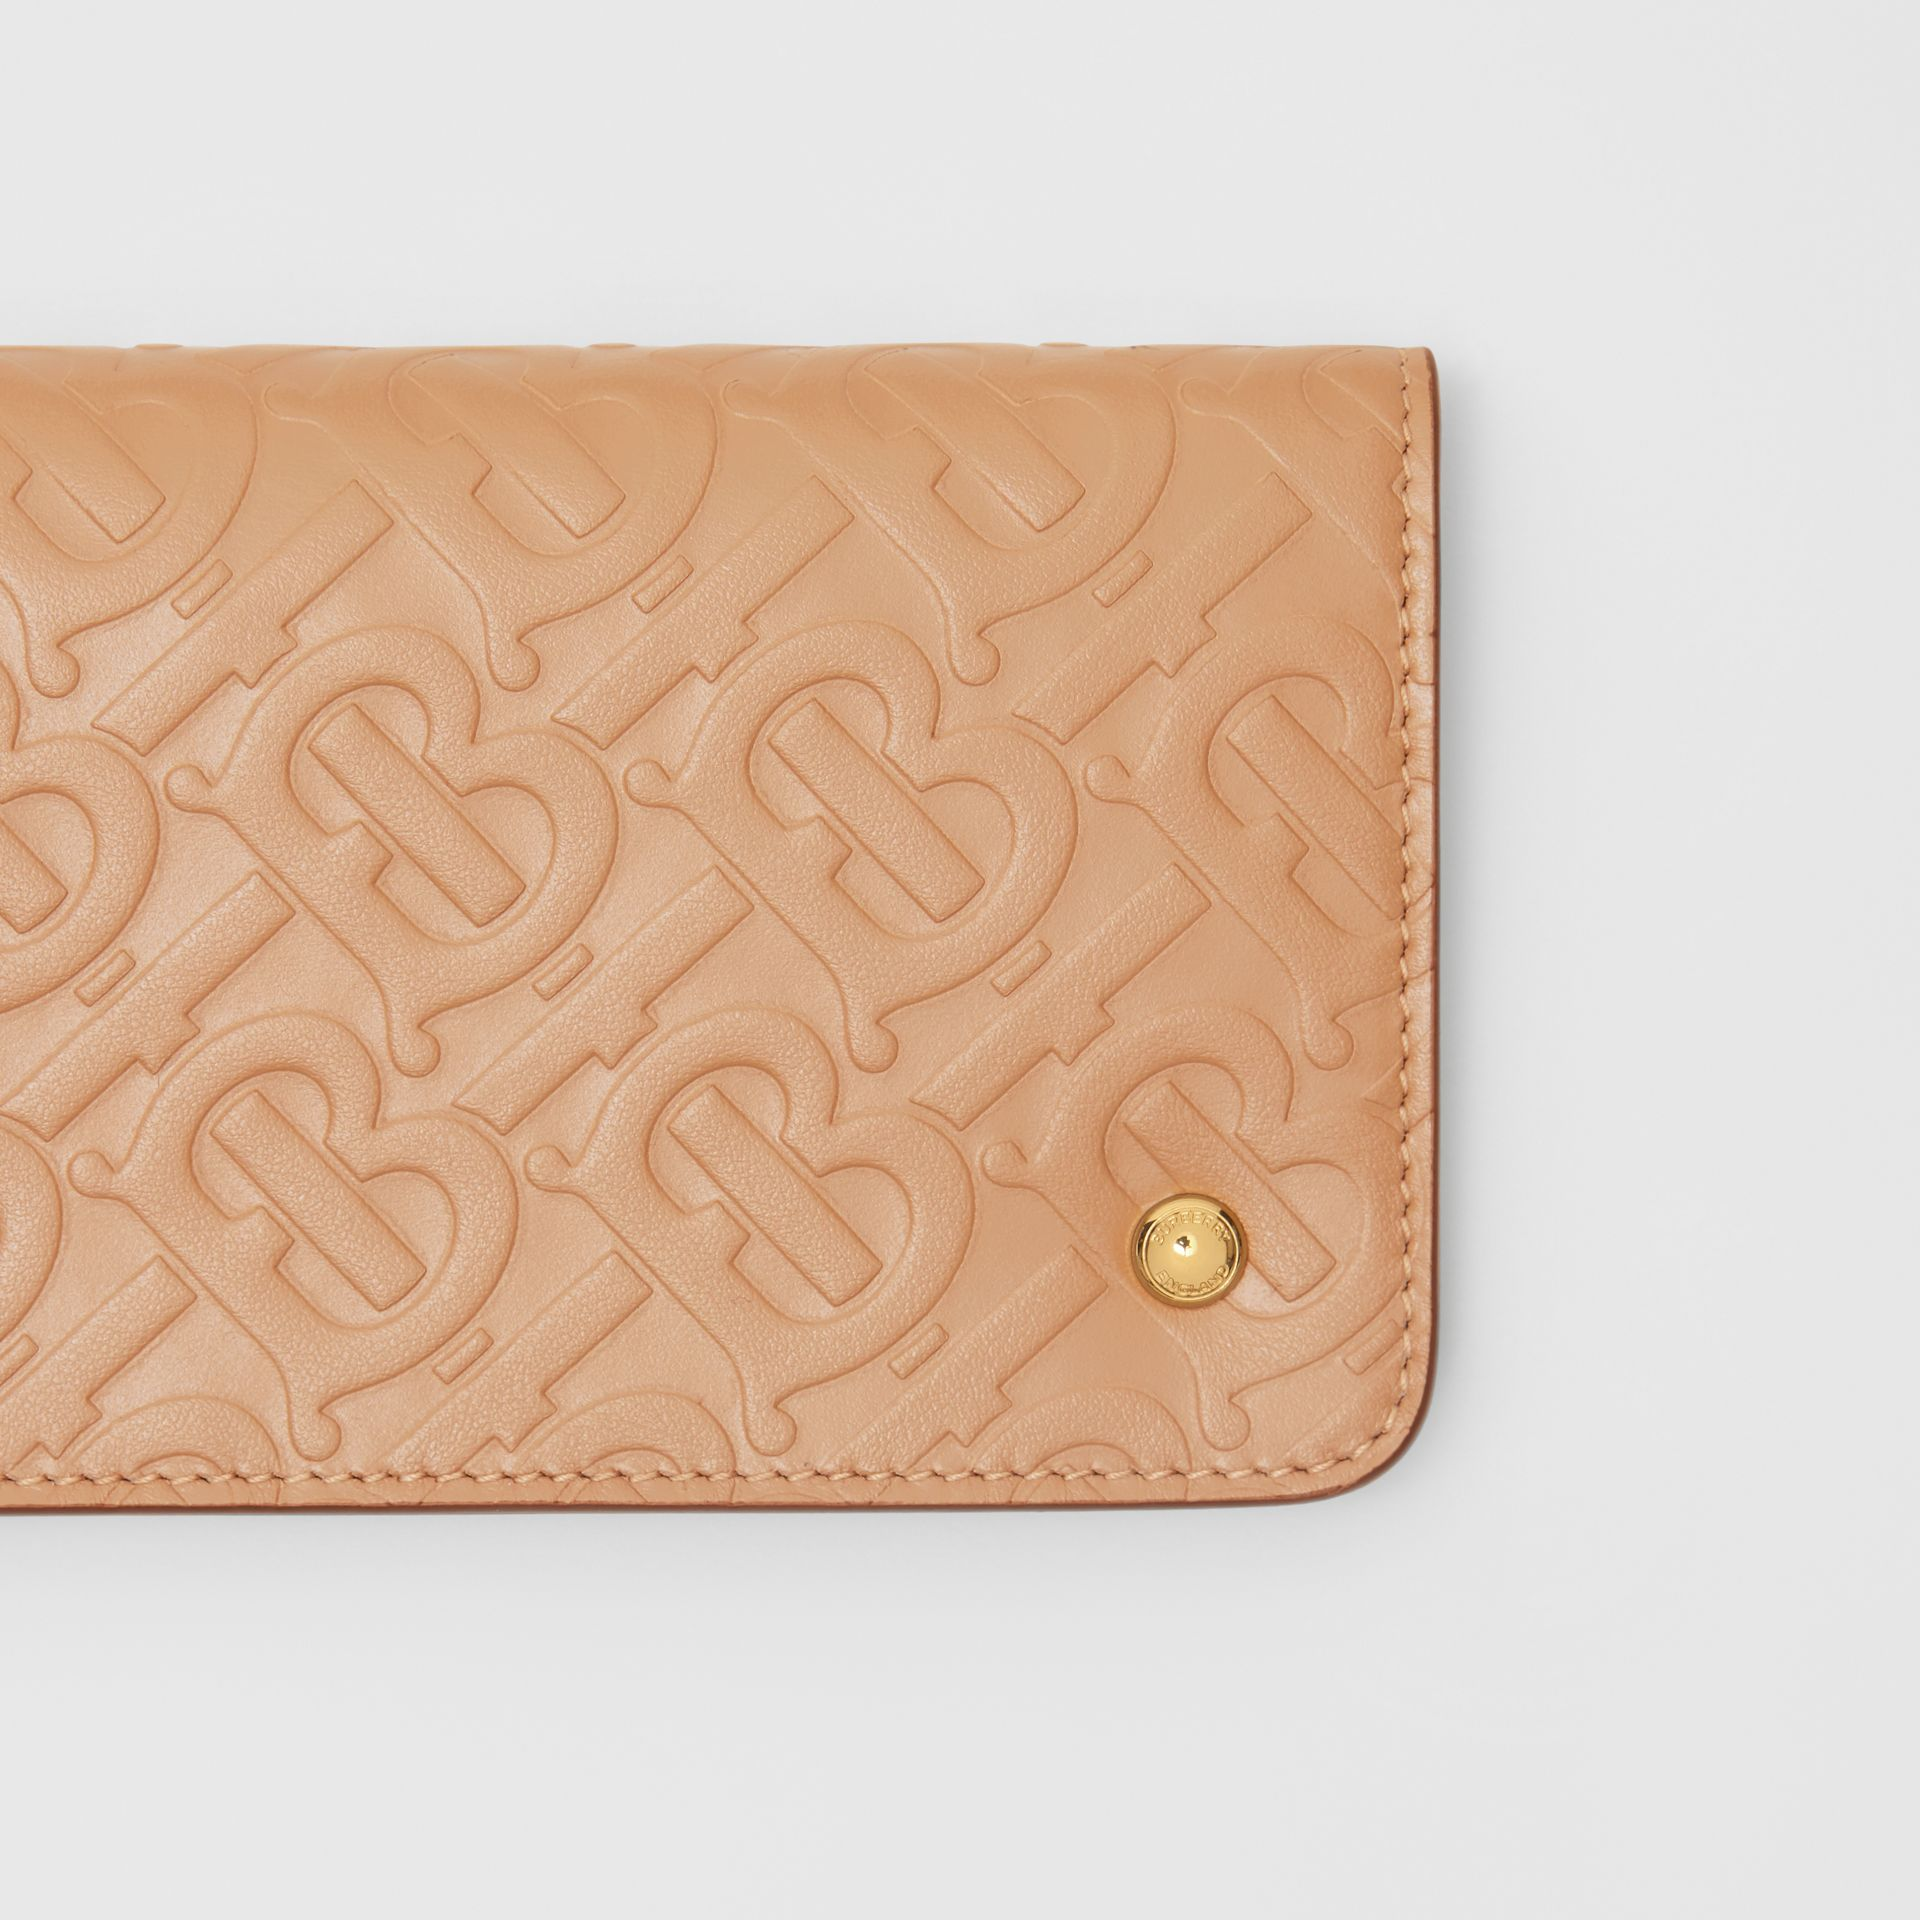 Monogram Leather Phone Wallet in Light Camel - Women | Burberry - gallery image 1